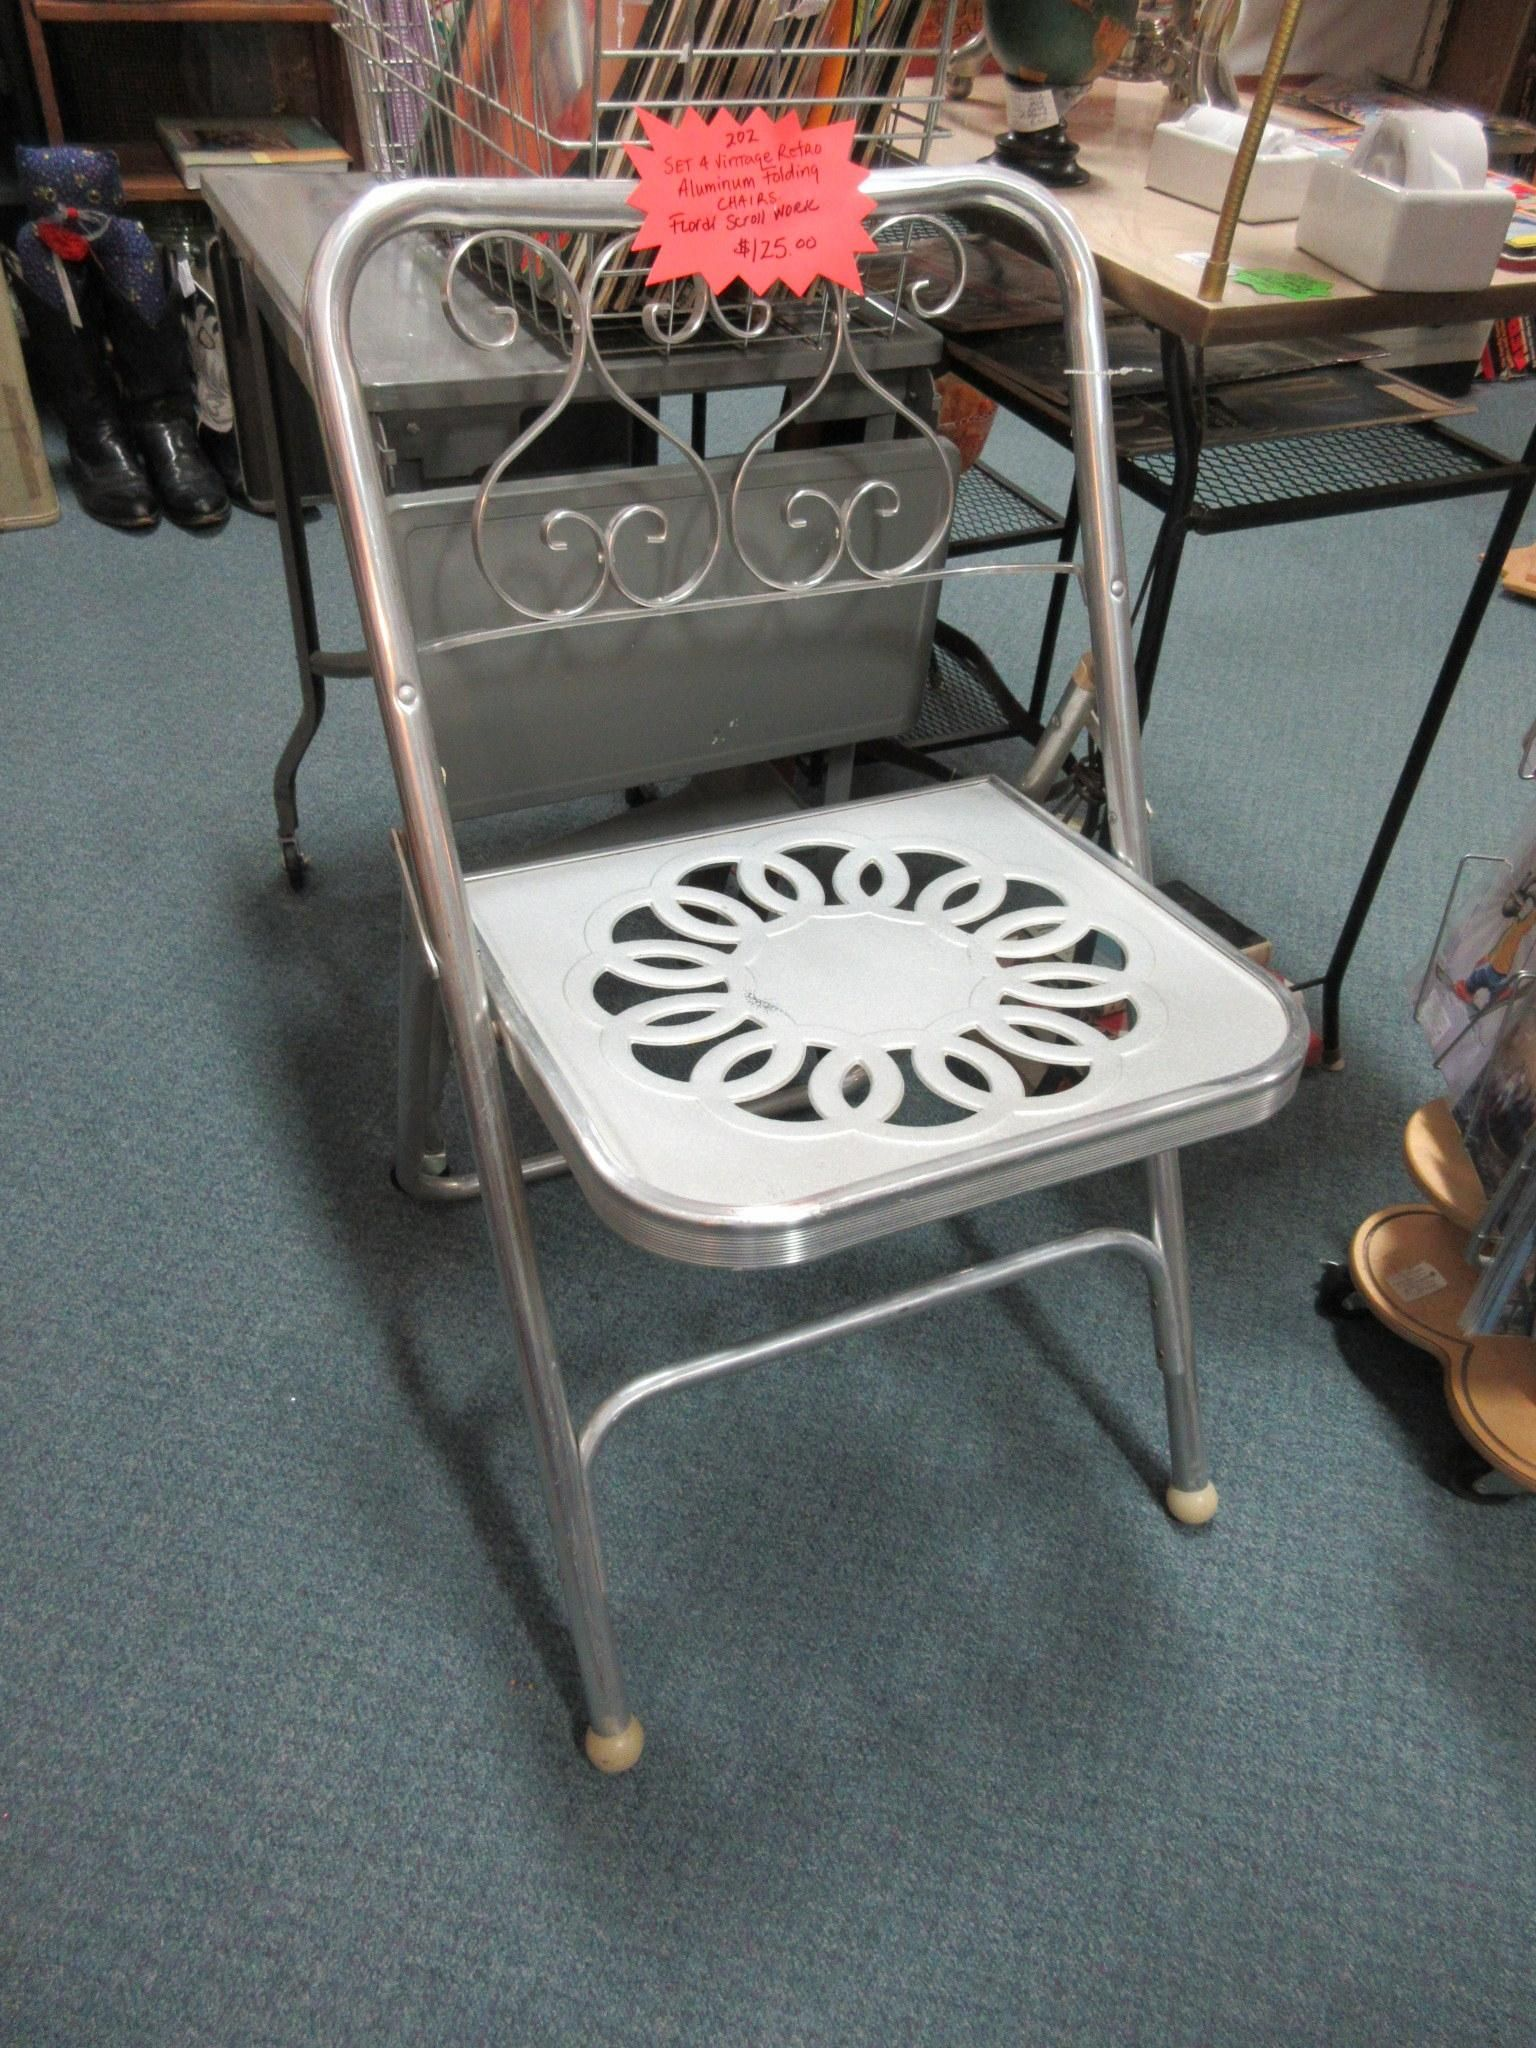 Set of 4 retro aluminum folding chairs From Vendor 202 in booth